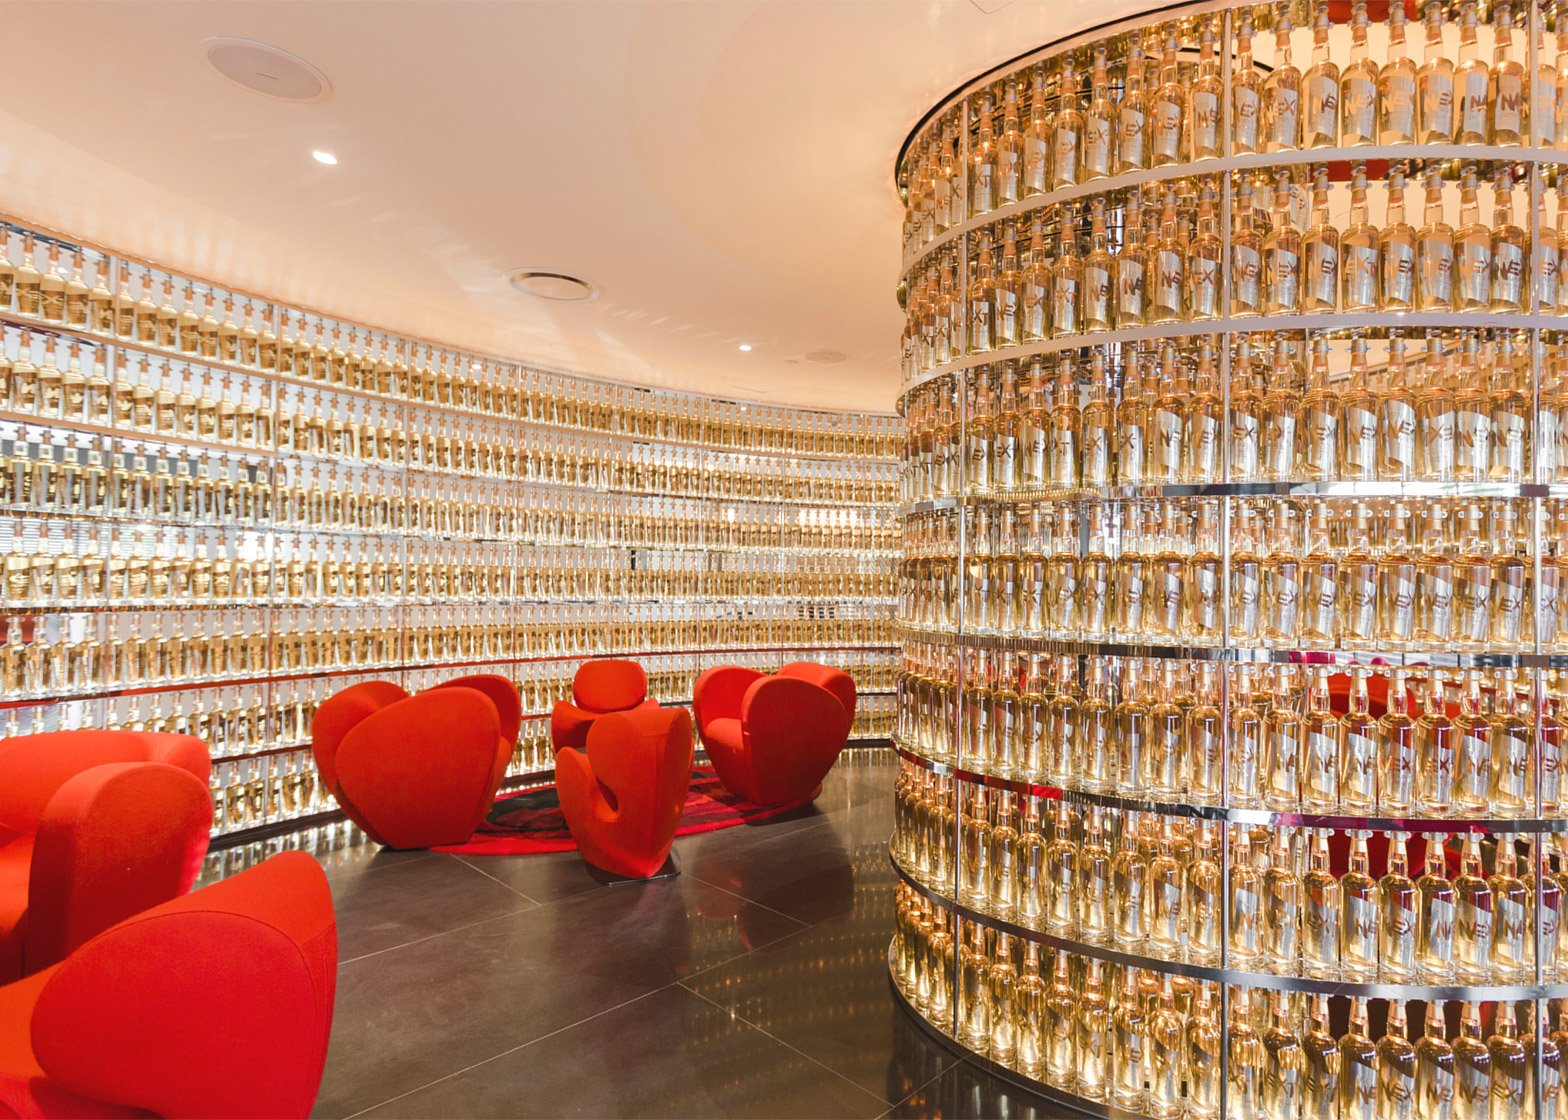 The Watergate Hotel renovation by Ron Arad